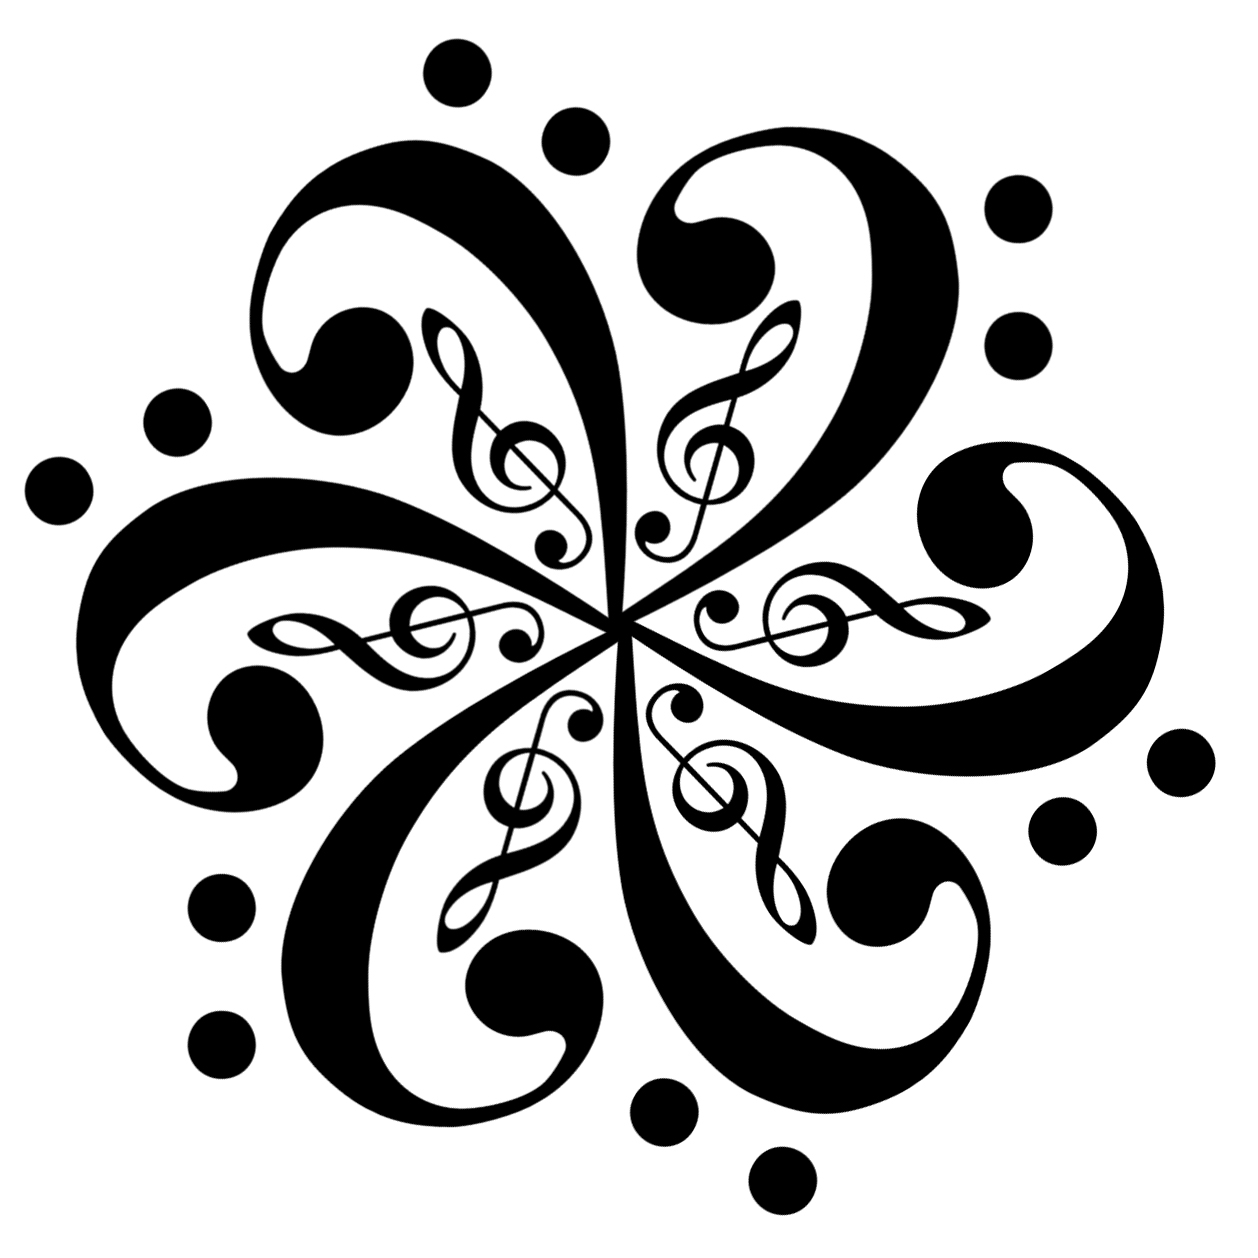 bass clef flower tattoo by chuckdraws on deviantart. Black Bedroom Furniture Sets. Home Design Ideas